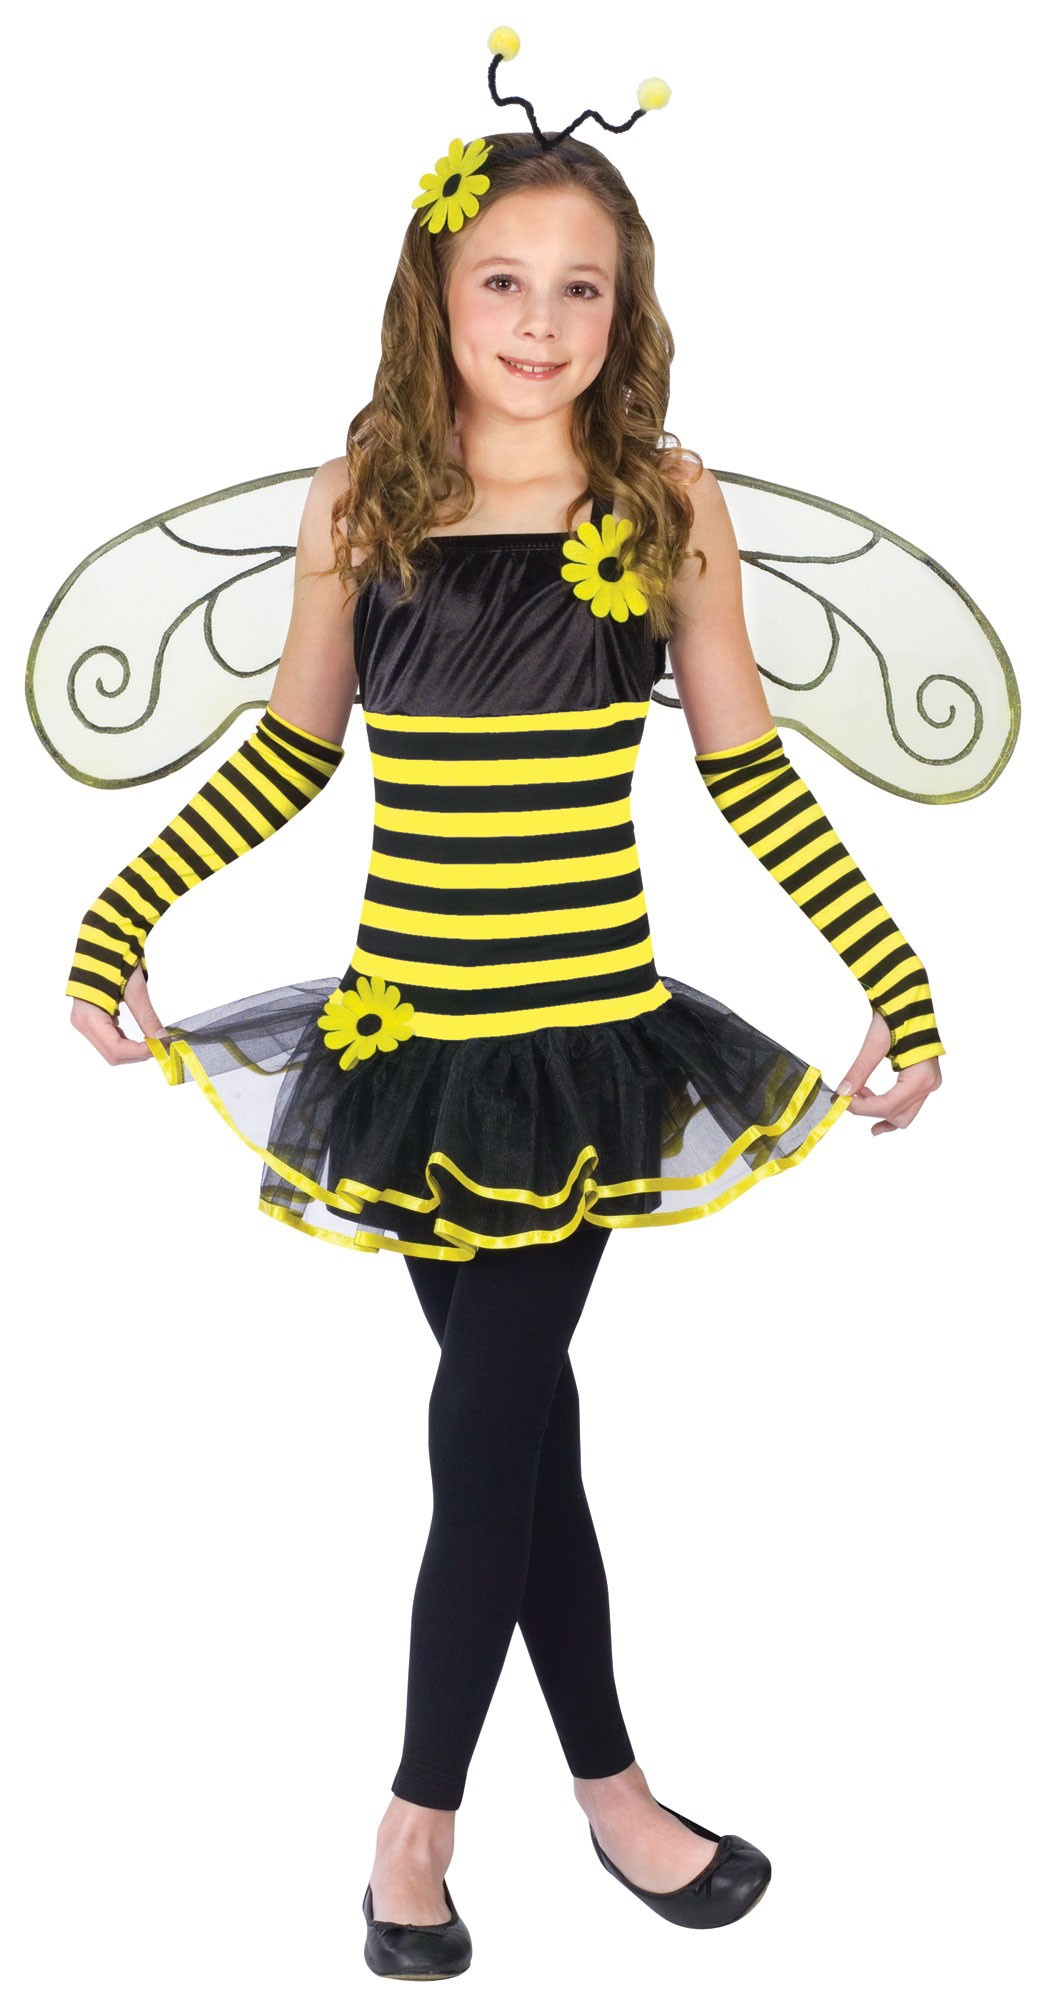 Mar 14, · Children and adults can have fun with a bumblebee costume. Wings, antennae and a black and yellow striped trunk make a homemade bee costume noticeable and fairly simple to construct. Use wire hangers and some craft supplies to make this costume for Halloween or 89%().